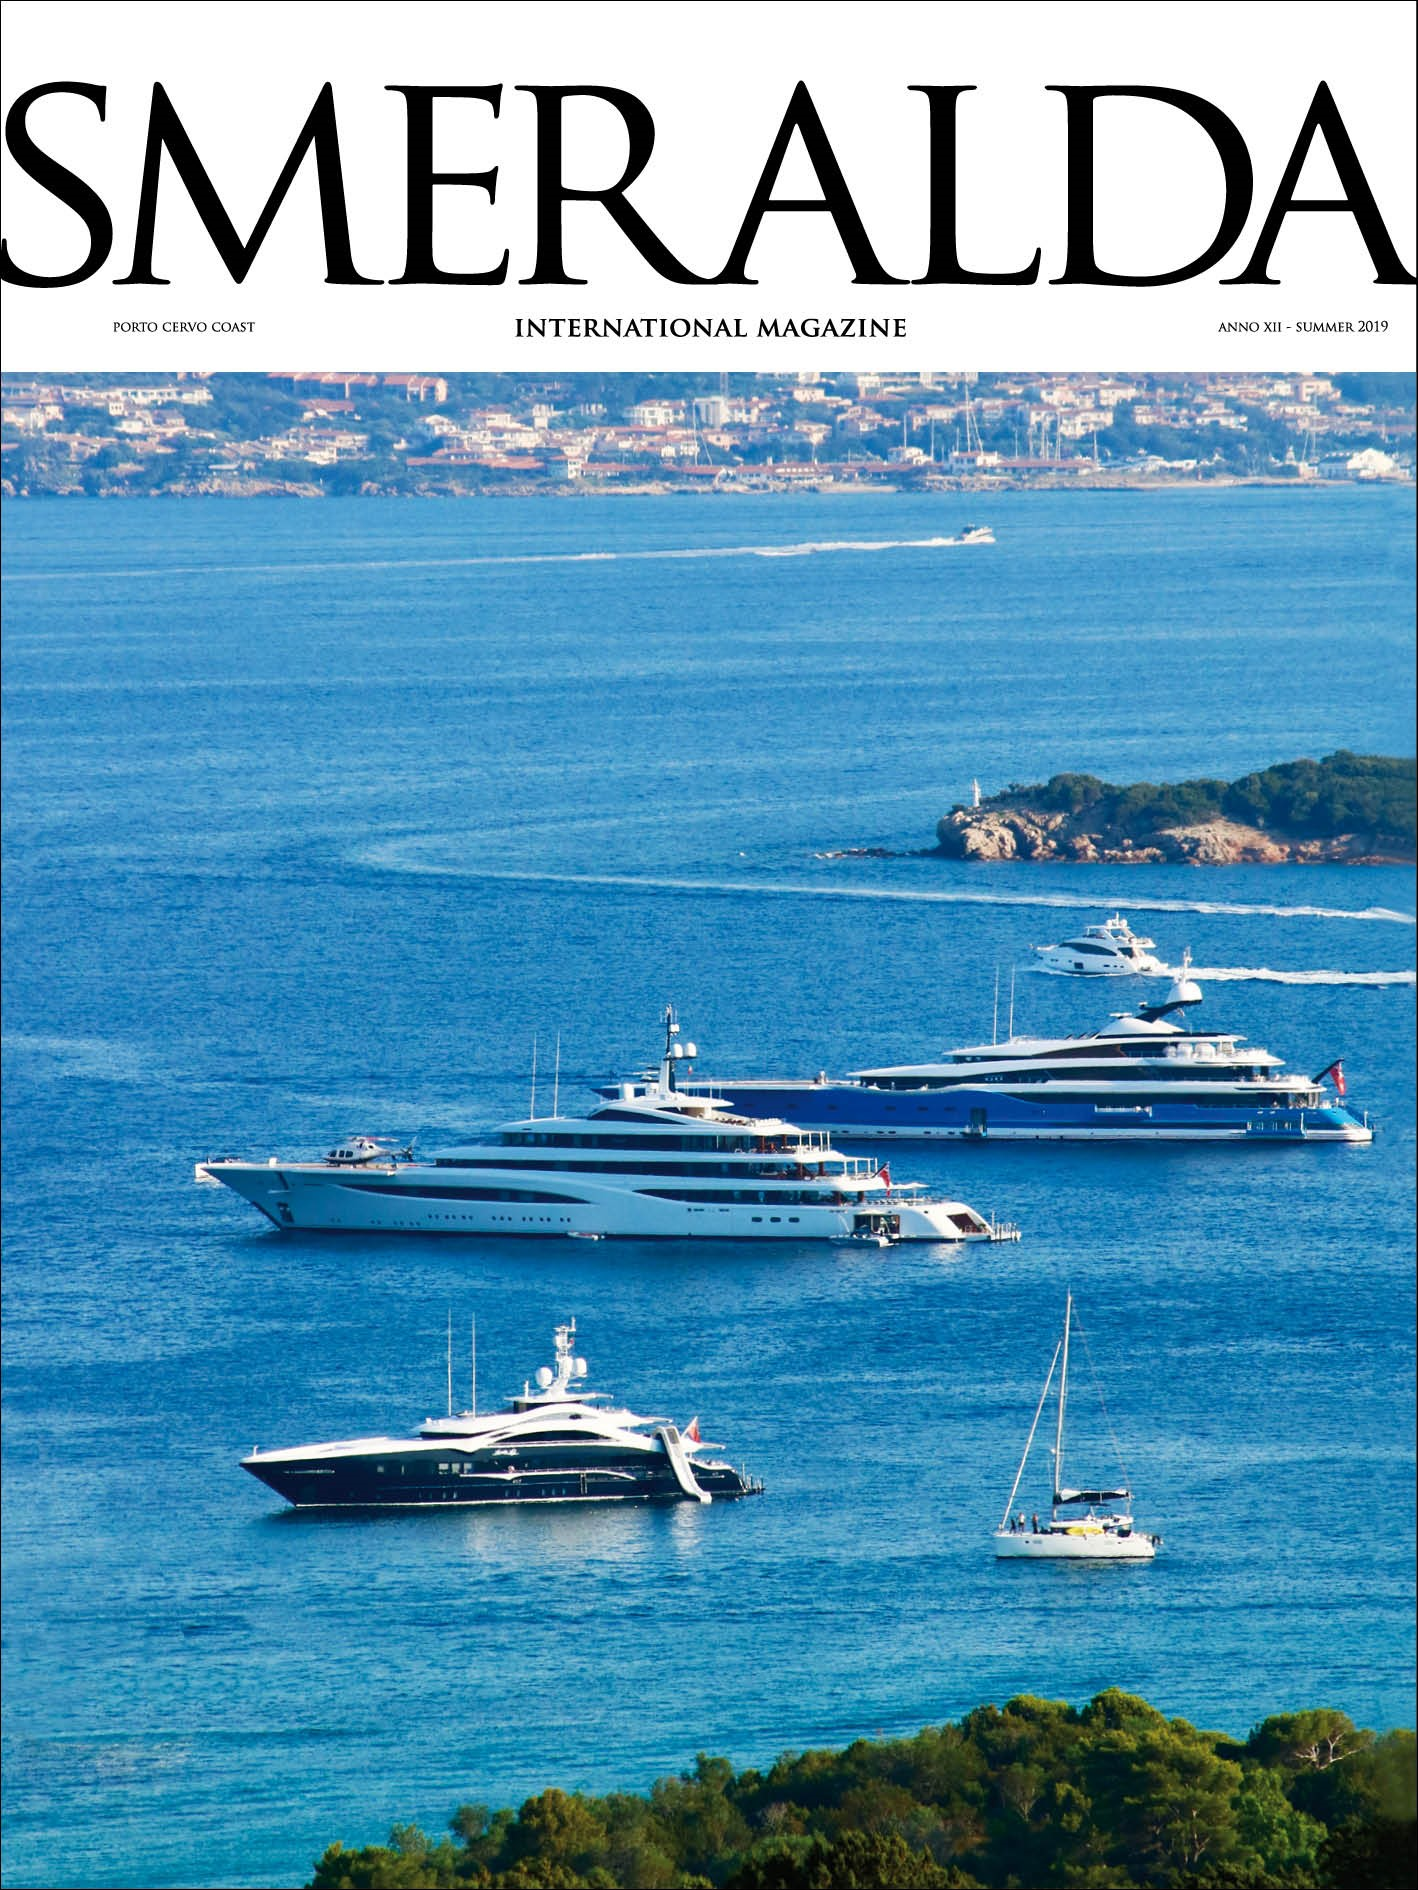 Smeralda International Magazine